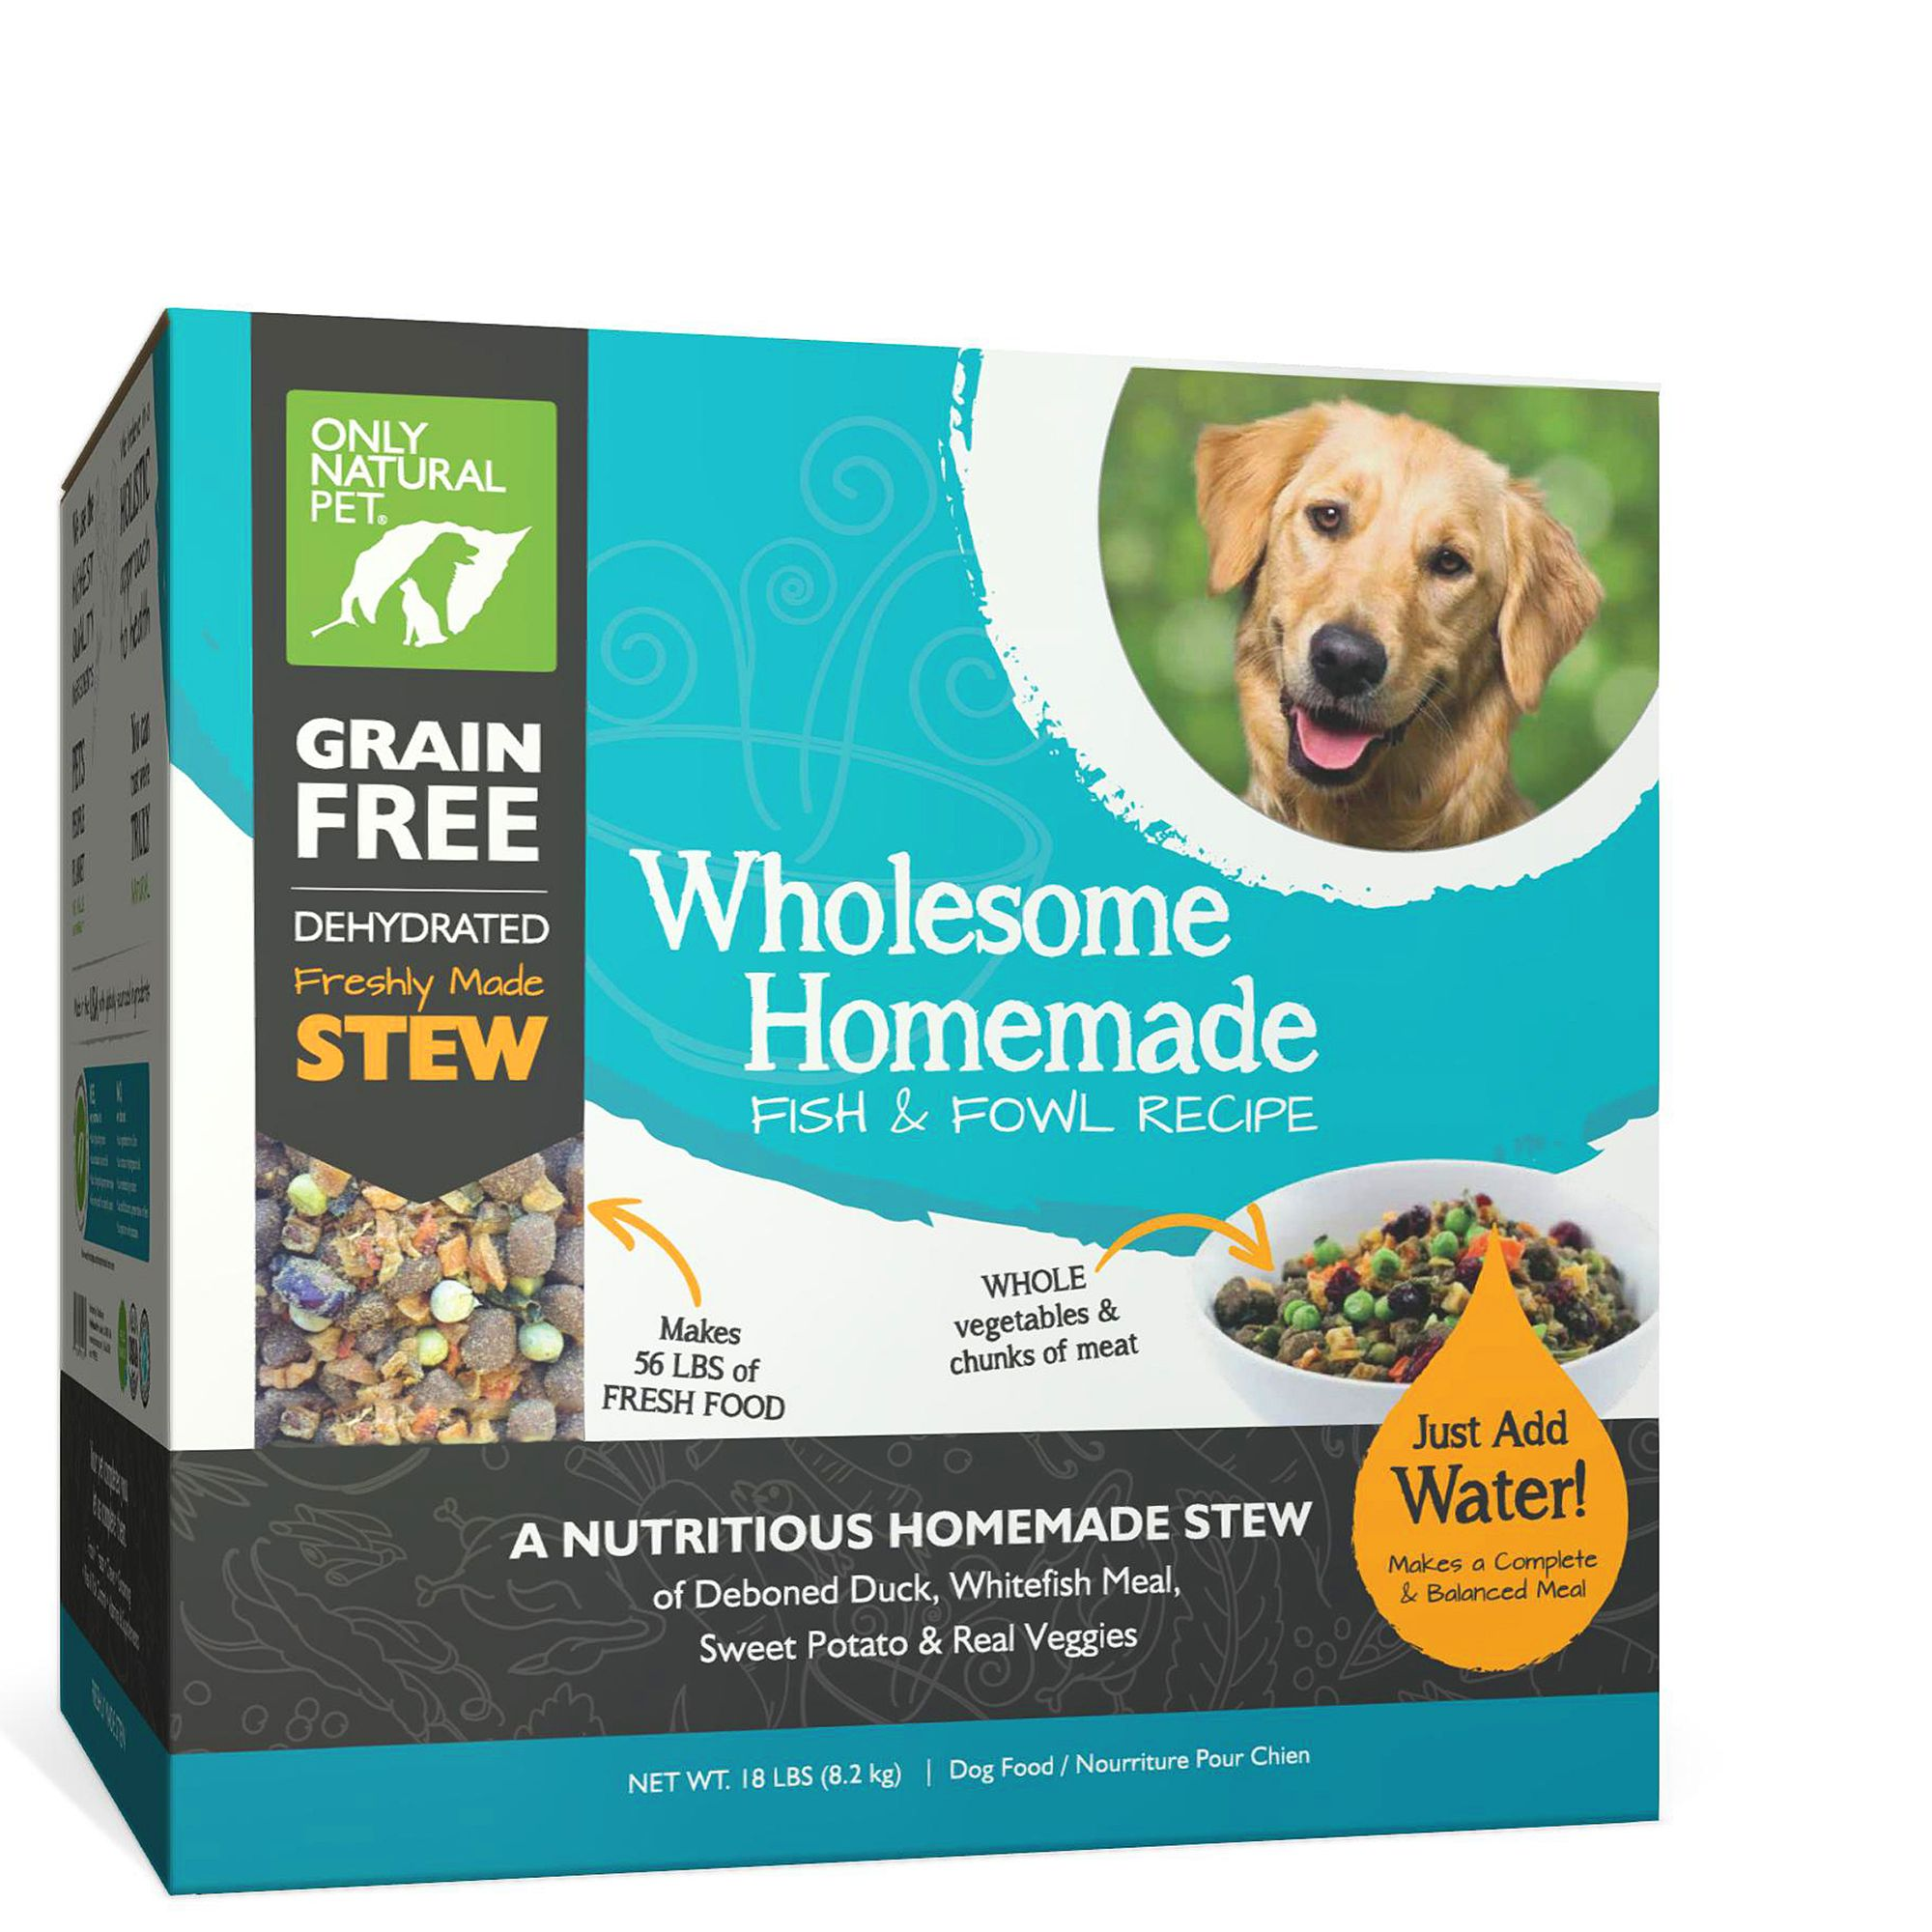 Only Natural Pet Wholesome Homemade Dog Food - Grain Free, Dehydrated, Fish and Fowl size: 18 Lb, Duck, Whitefish, Stew 5259854